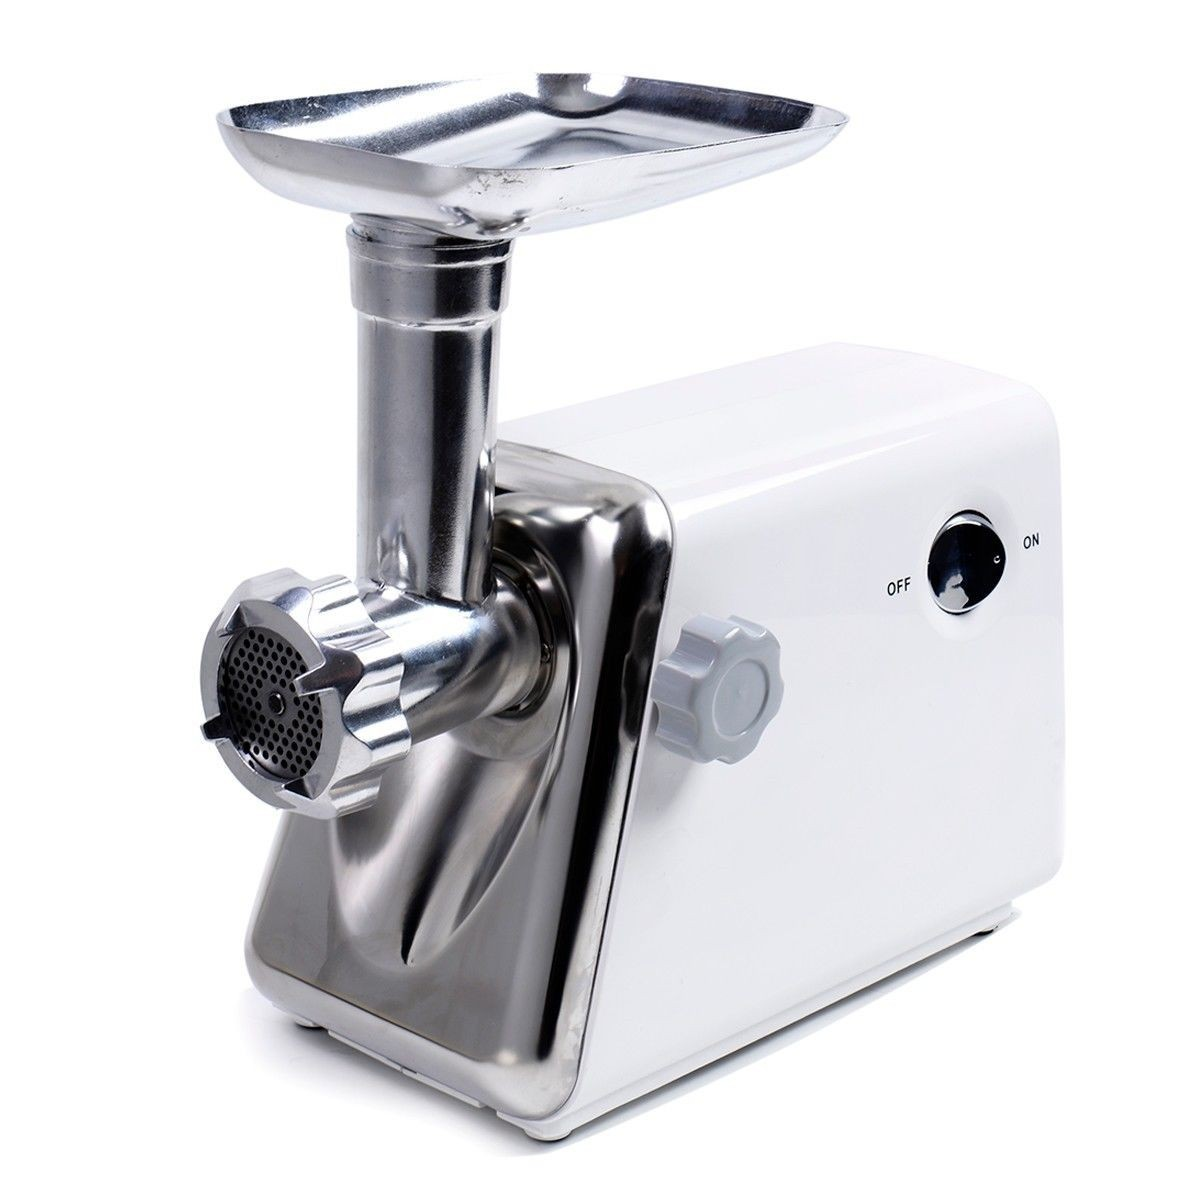 1300 Watt Electric Meat Grinder Industrial Meat Grinder Us Stock Steel by Apontus